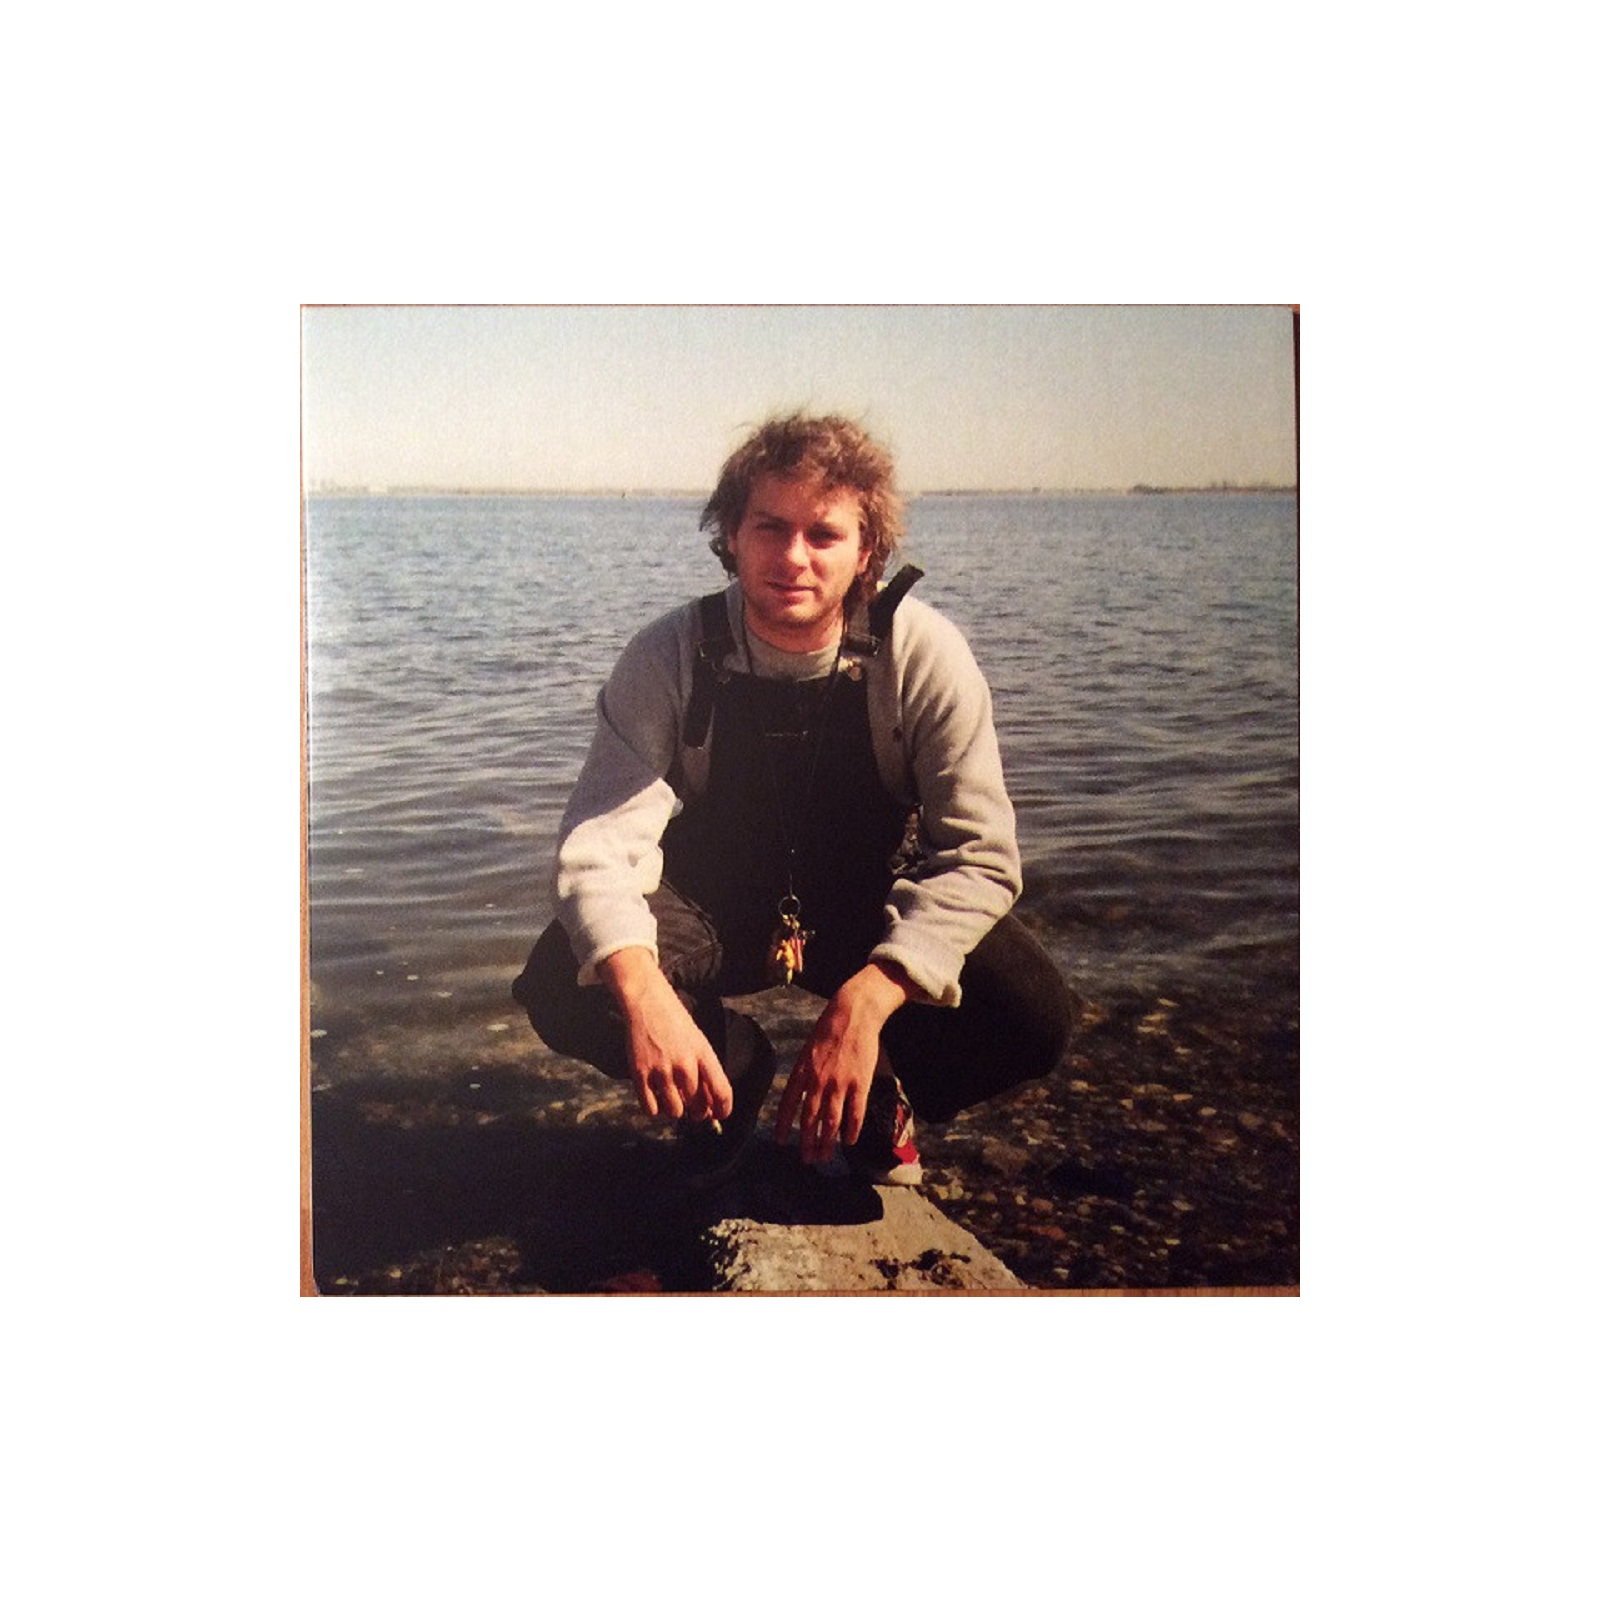 MAC DEMARCO - ANOTHER DAY (LIMITED EDITION VINYL LP)